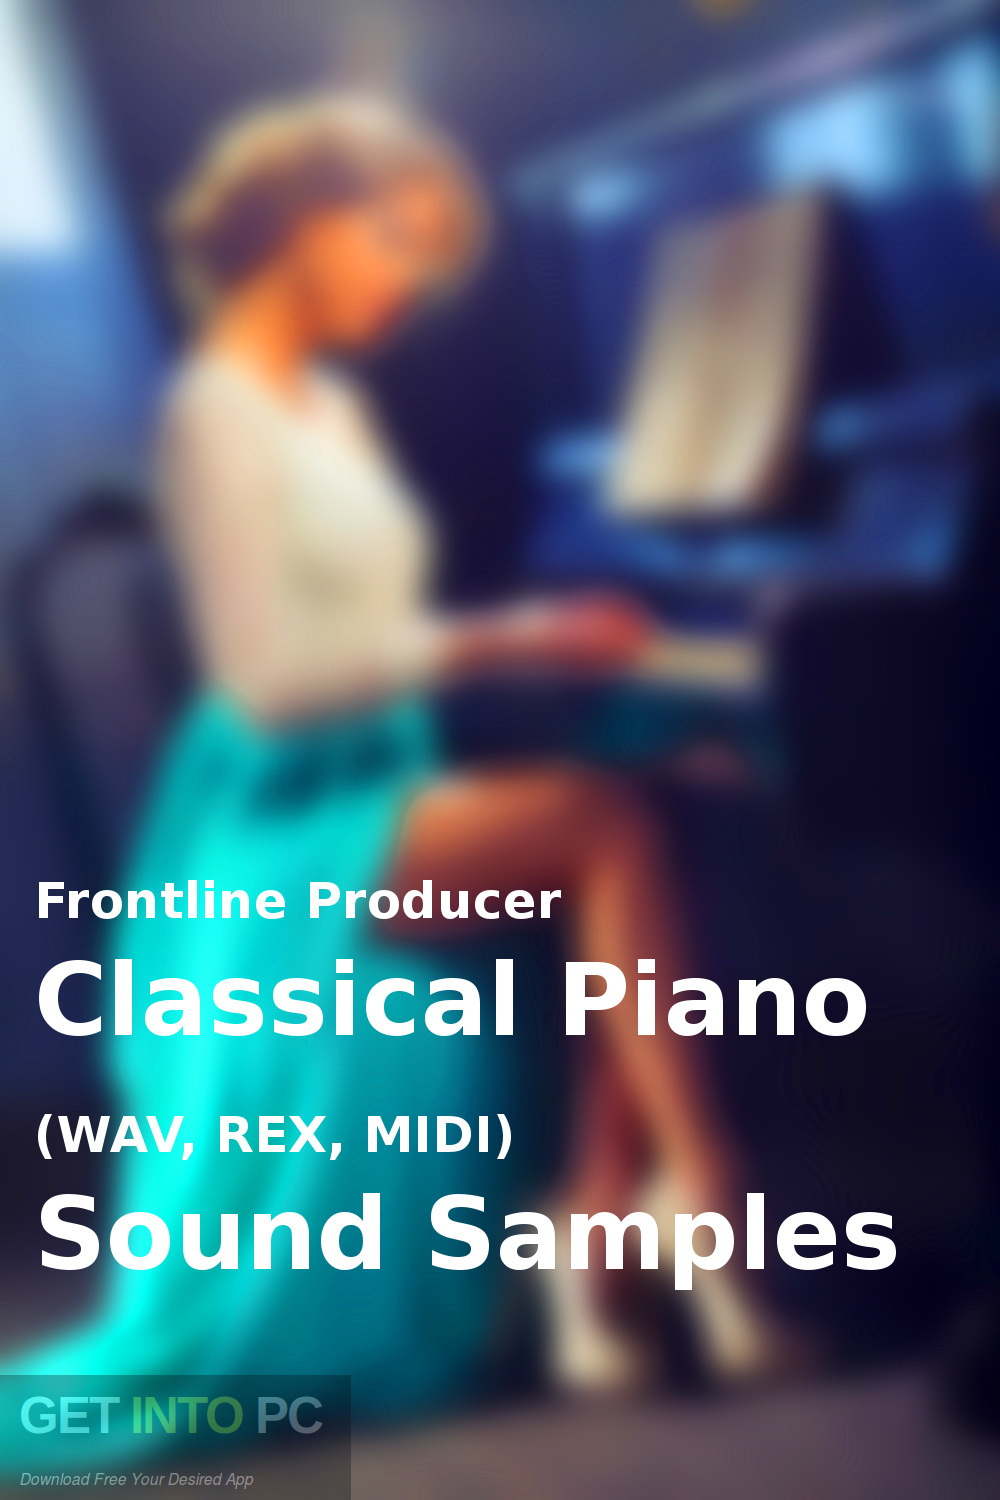 Frontline Producer - Classical Piano (WAV, REX, MIDI) Sound Samples Offline Installer Download-GetintoPC.com